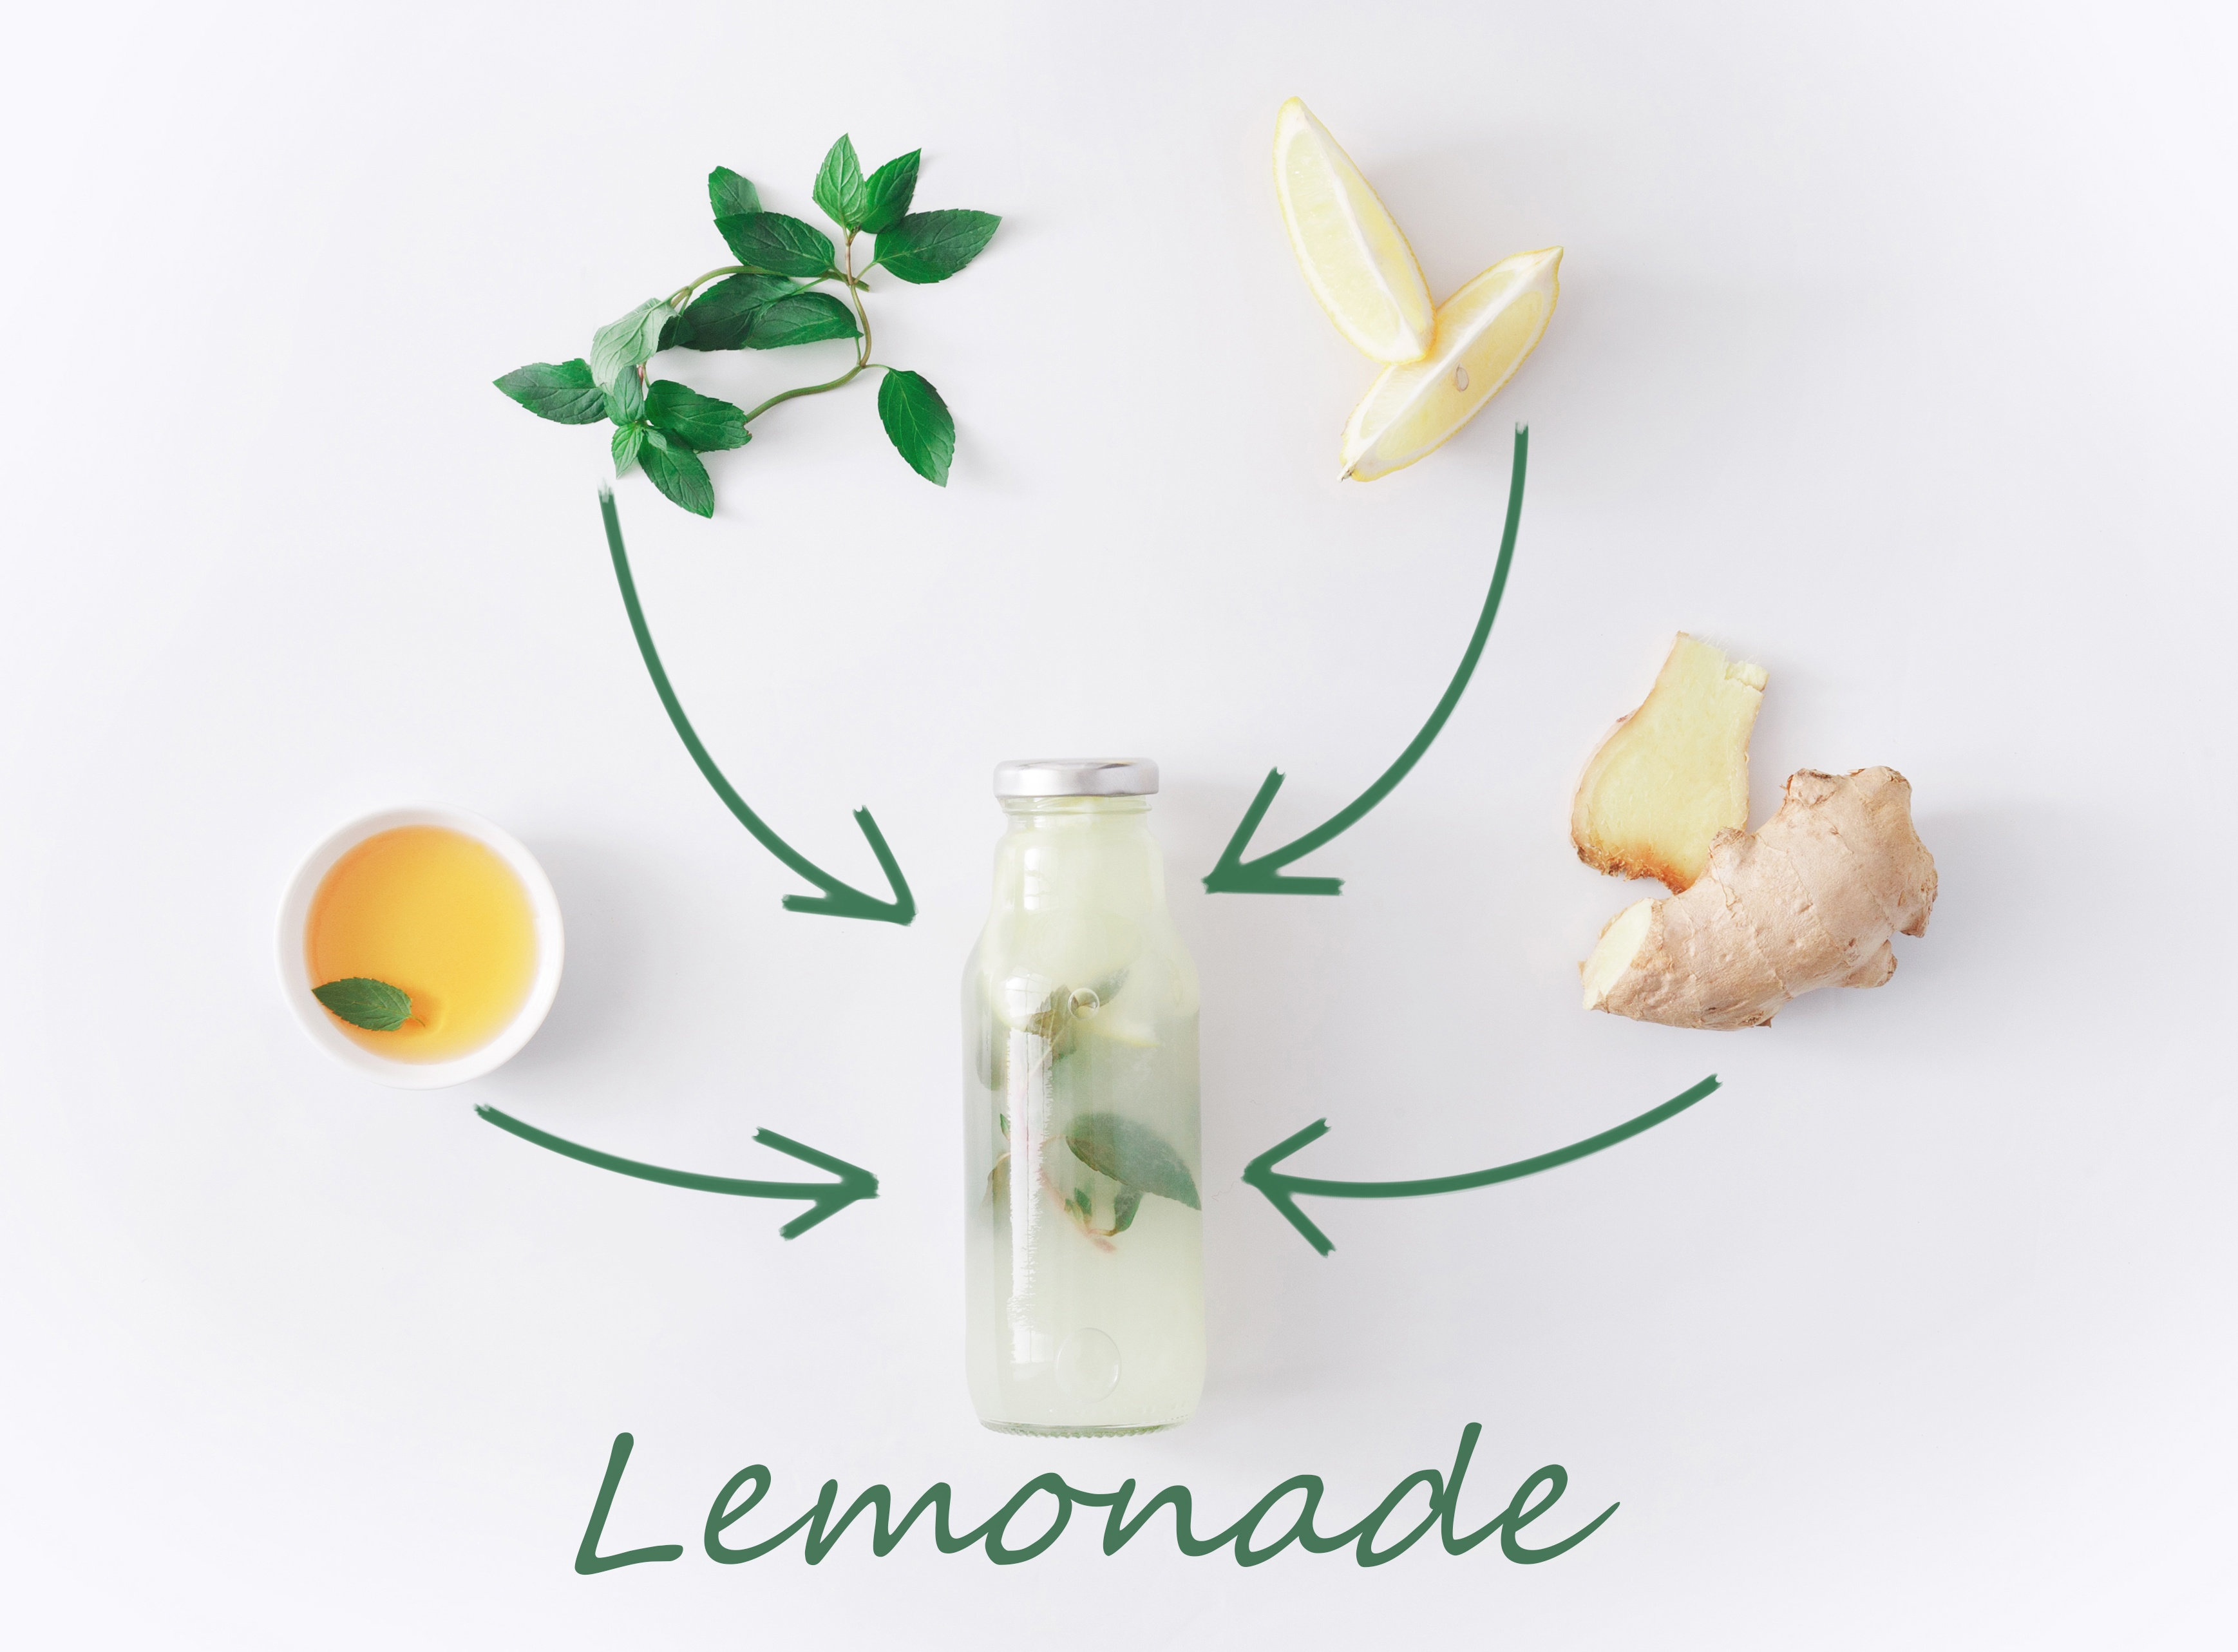 iStock-639705792 clean label lemonade.jpg